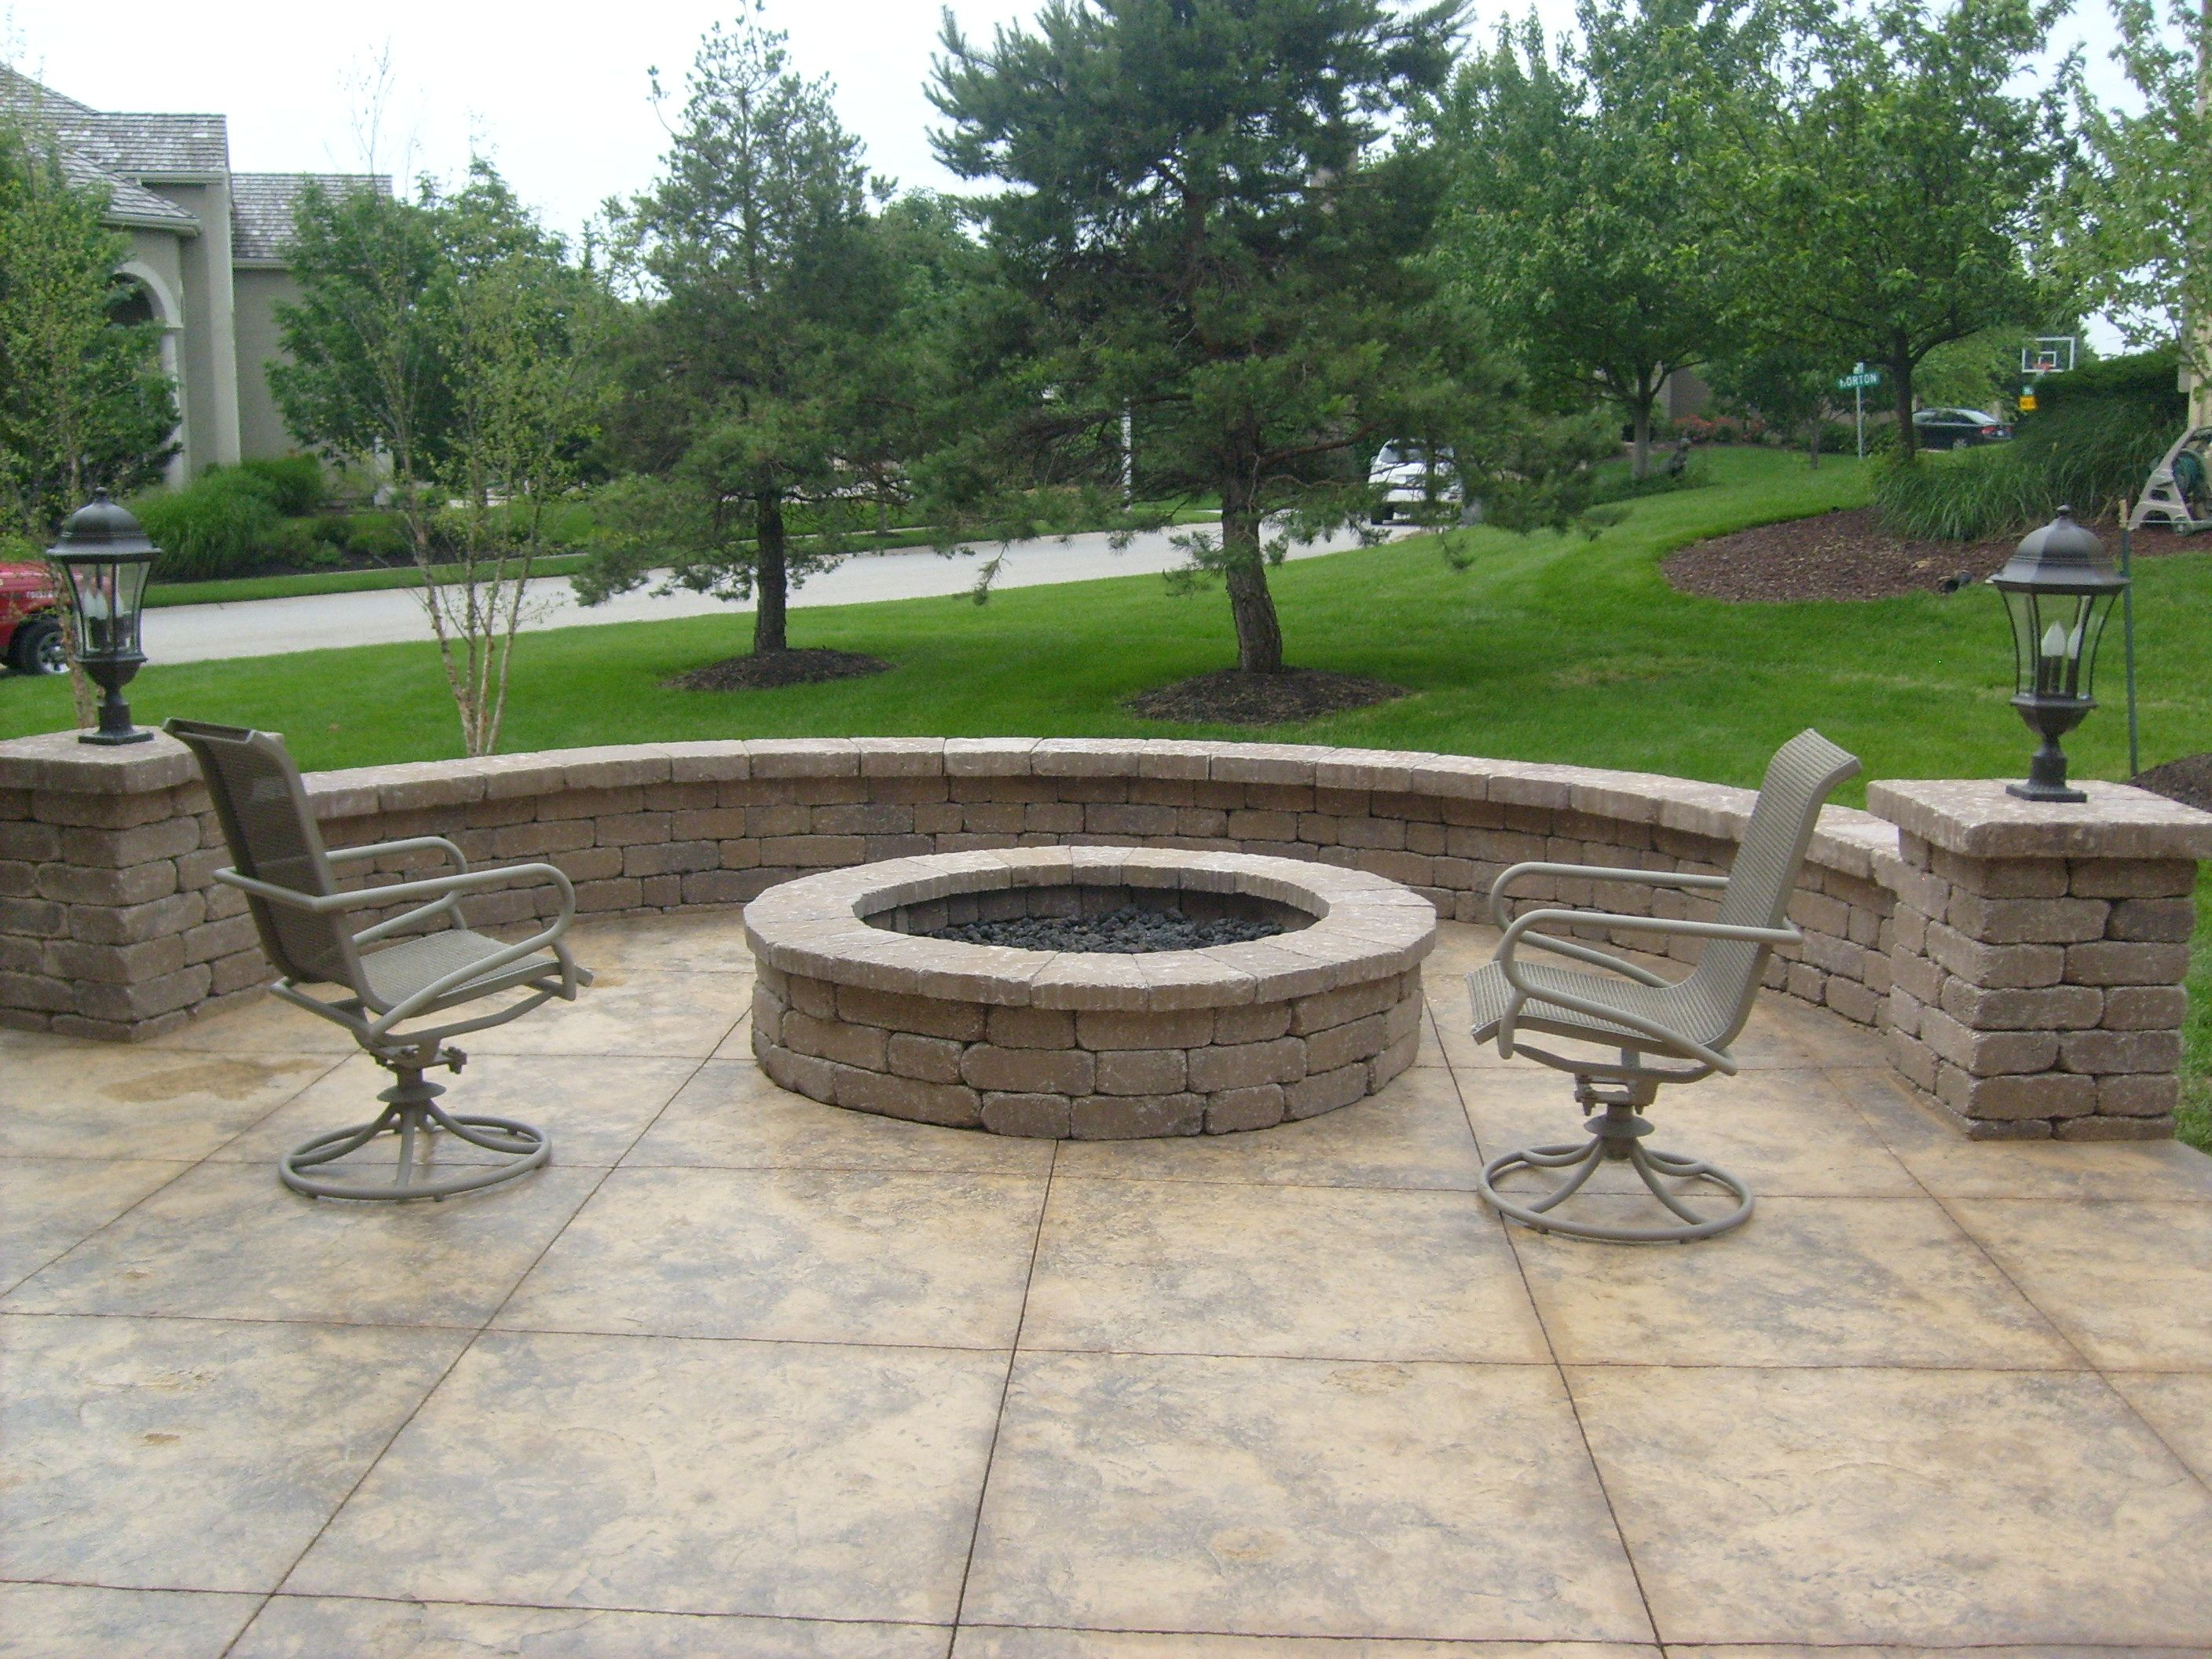 Stamped Concrete Patio With Seating Retaining Wall And Firepit Concrete Patio Paver Patio Diy Concrete Patio